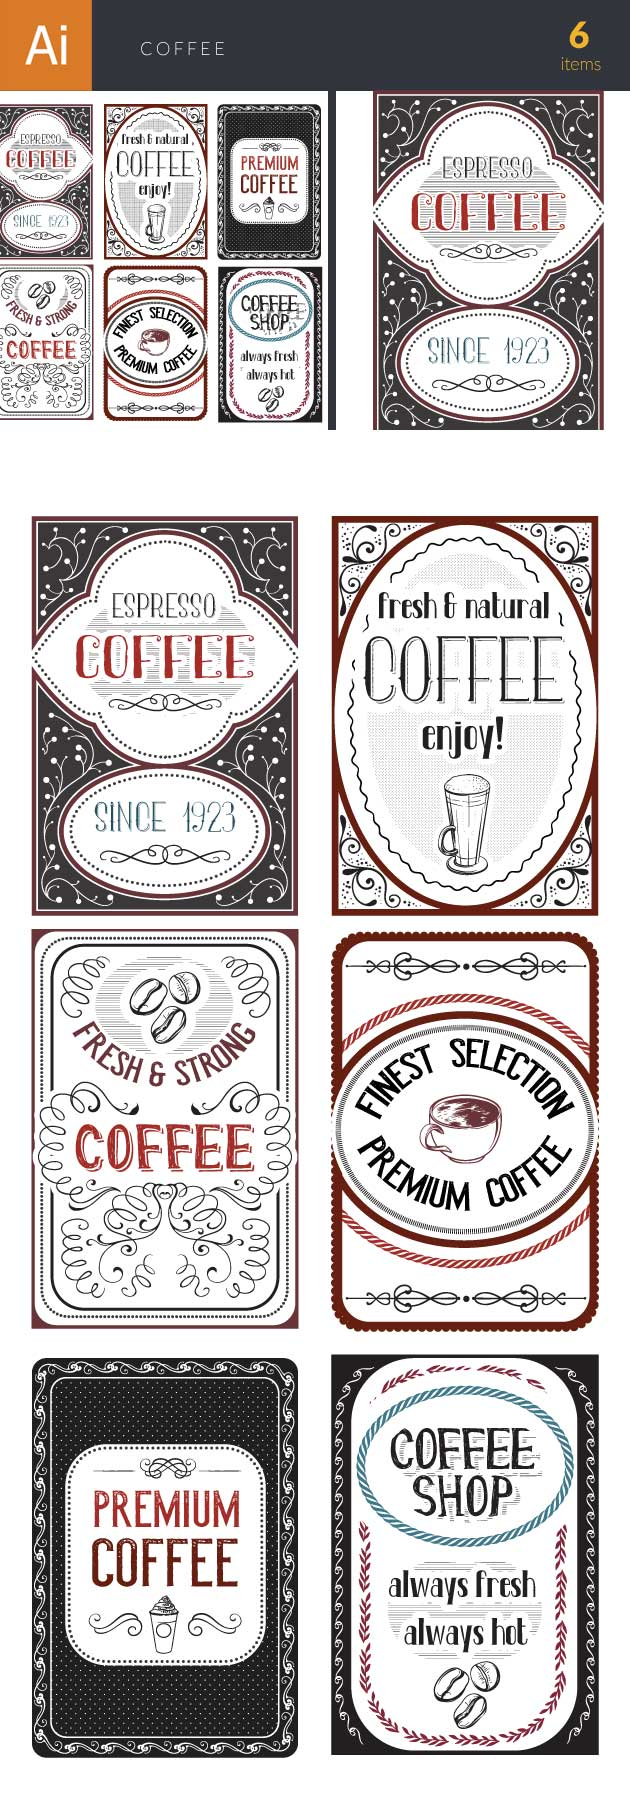 design-tnt-coffee-set-13-large-preview